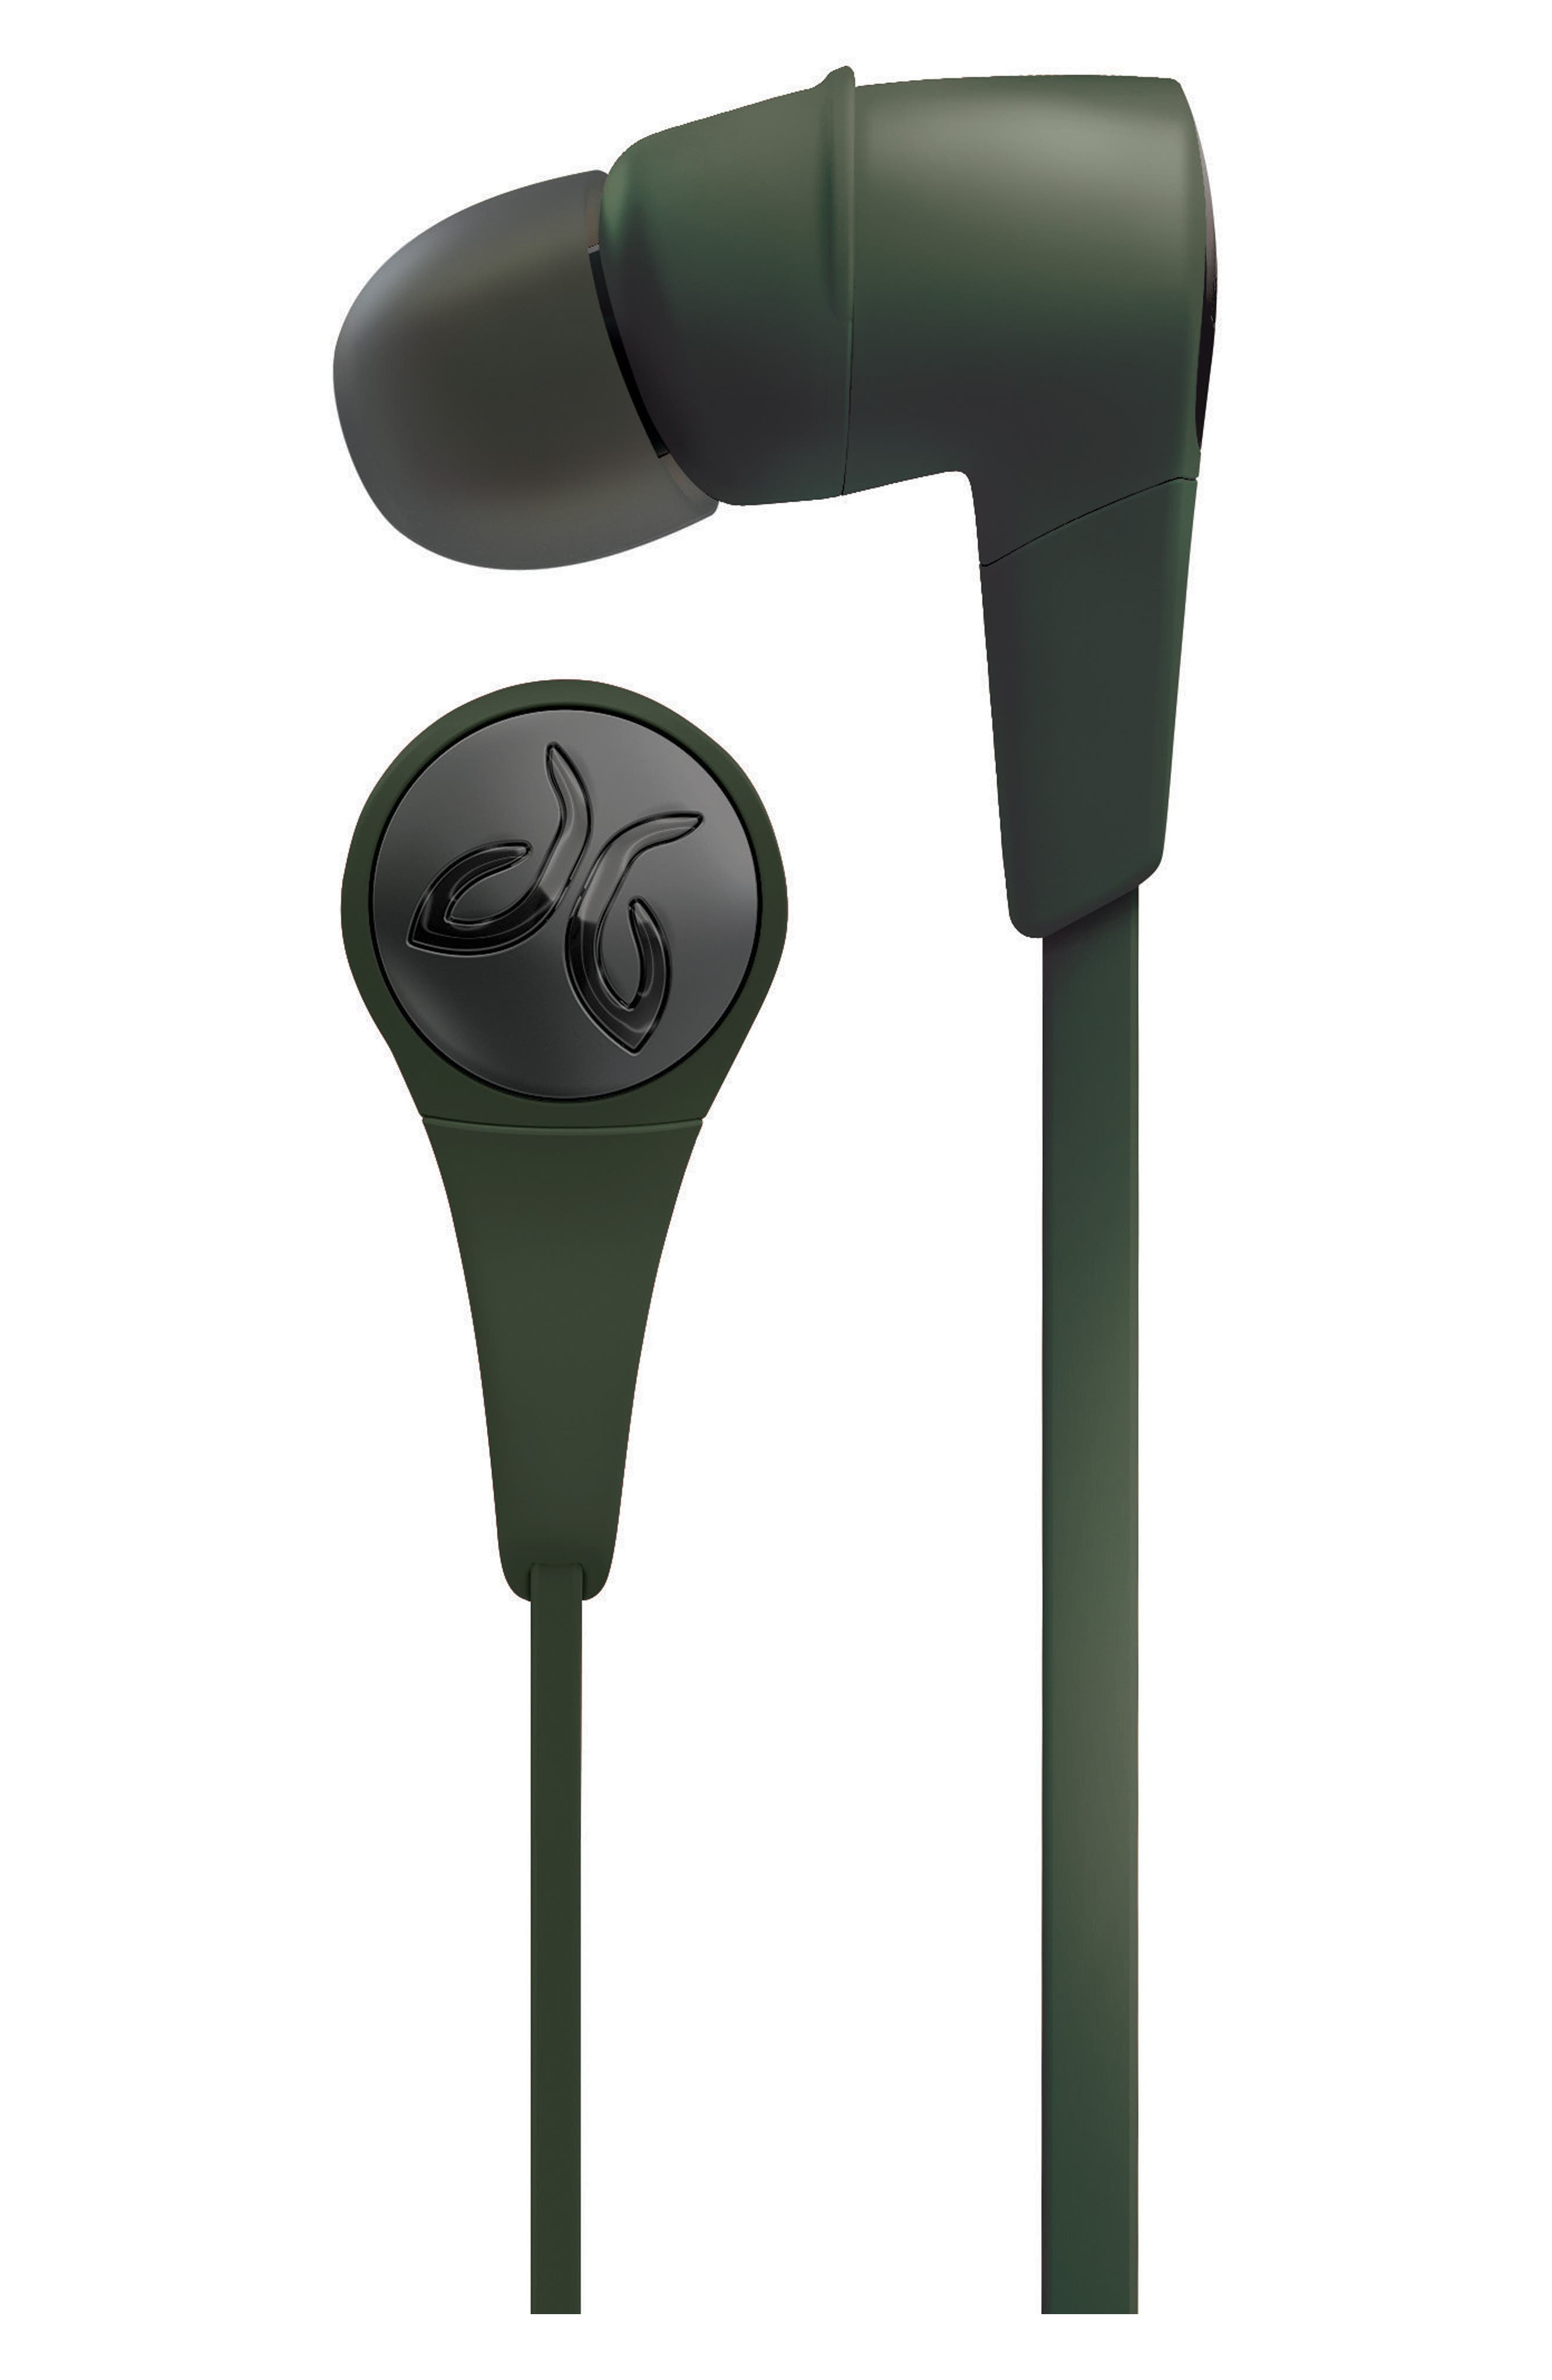 Jaybird x3 Sport BT Wireless Earbuds